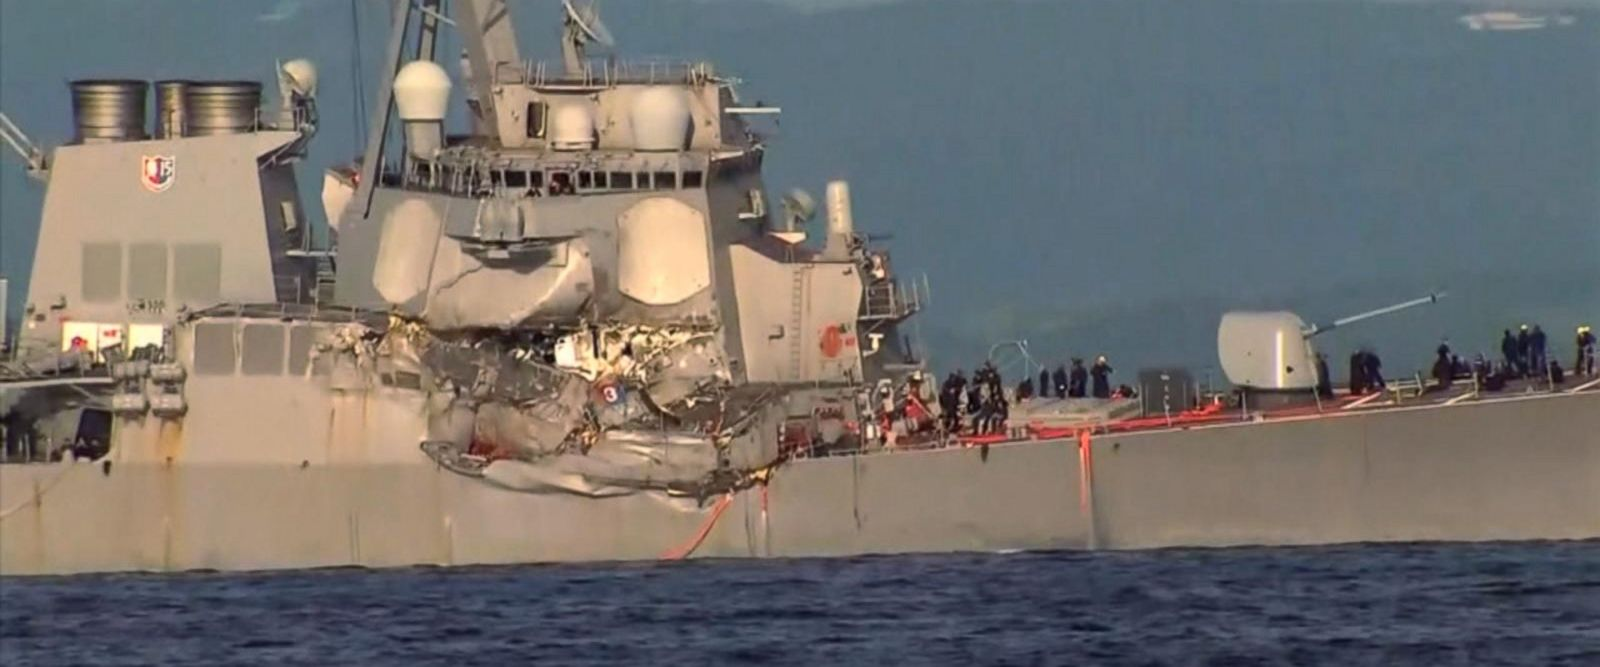 VIDEO: Captain says he gave warning before deadly ship crash